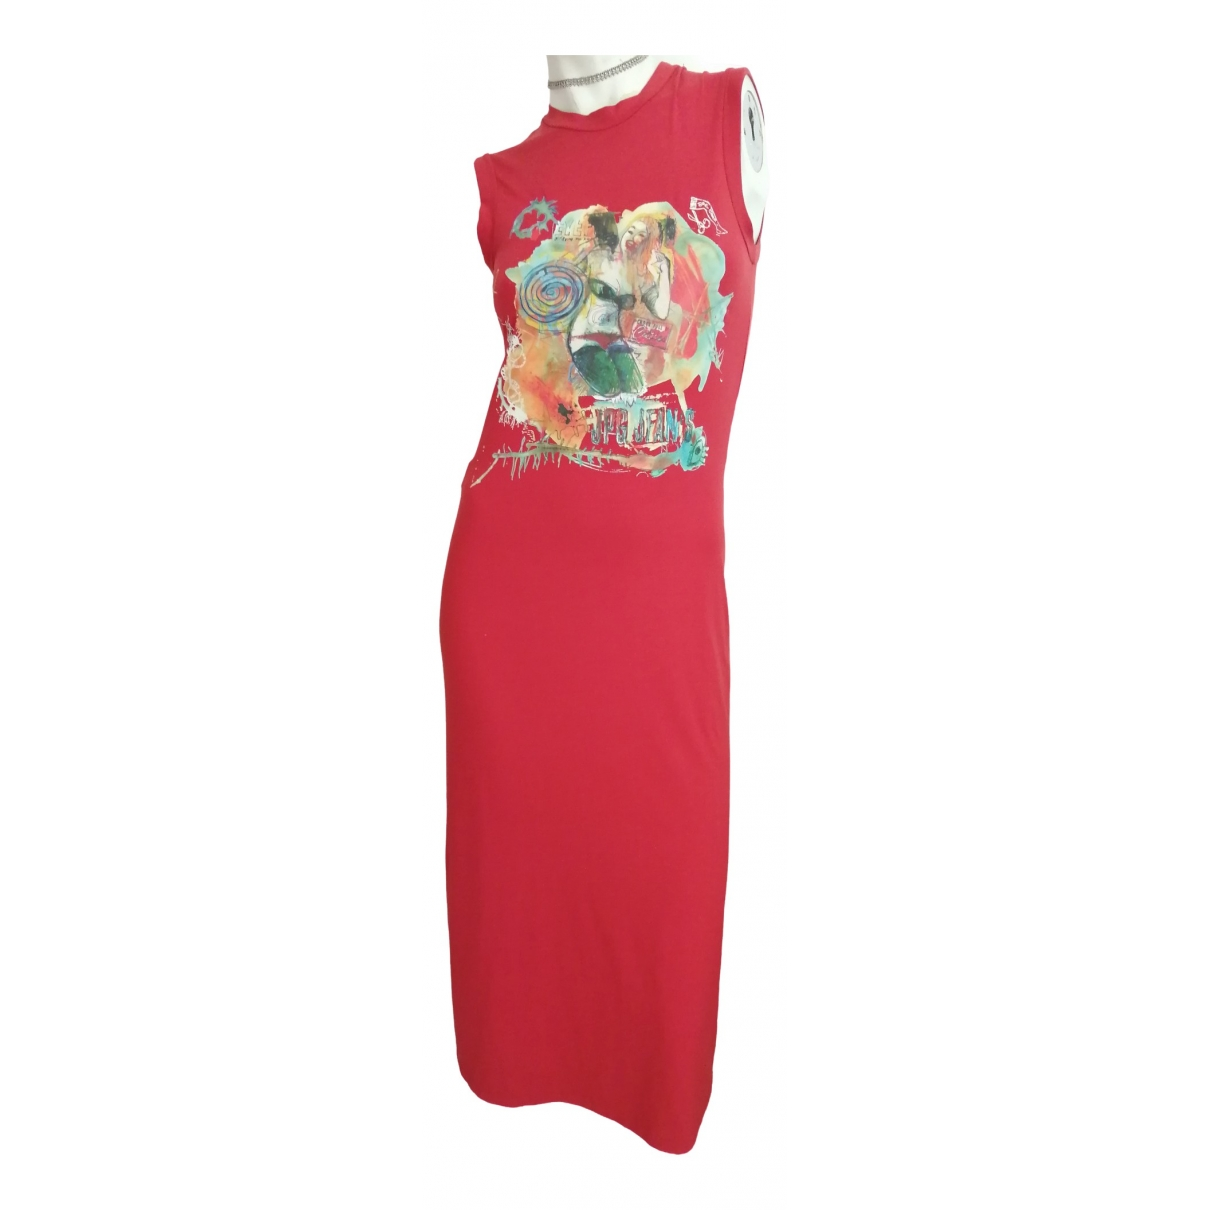 Jean Paul Gaultier N Red dress for Women 36 FR